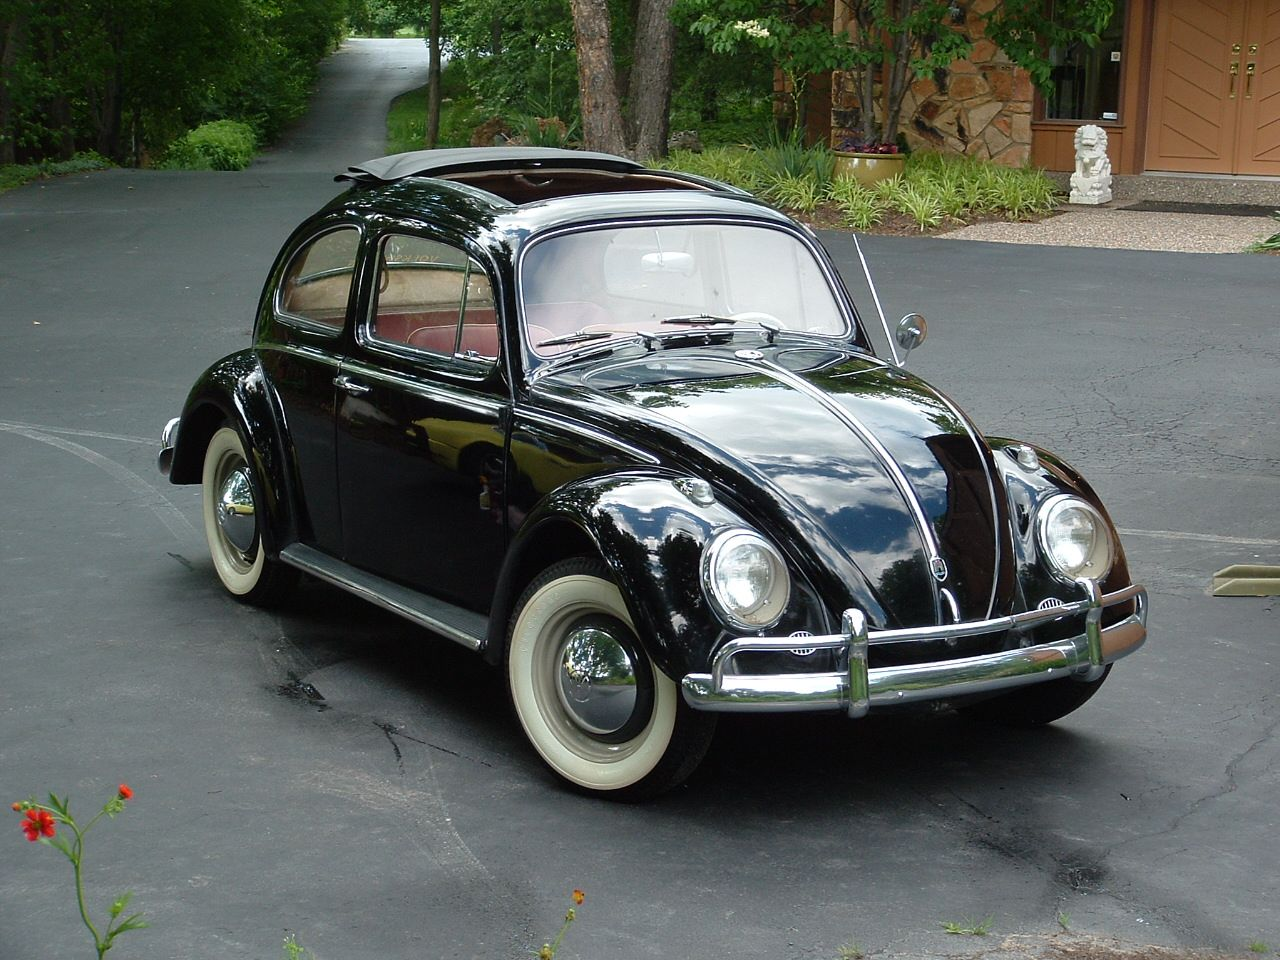 1949 Volkswagen Beetle | Solo Cholo | Pinterest | Beetles ...